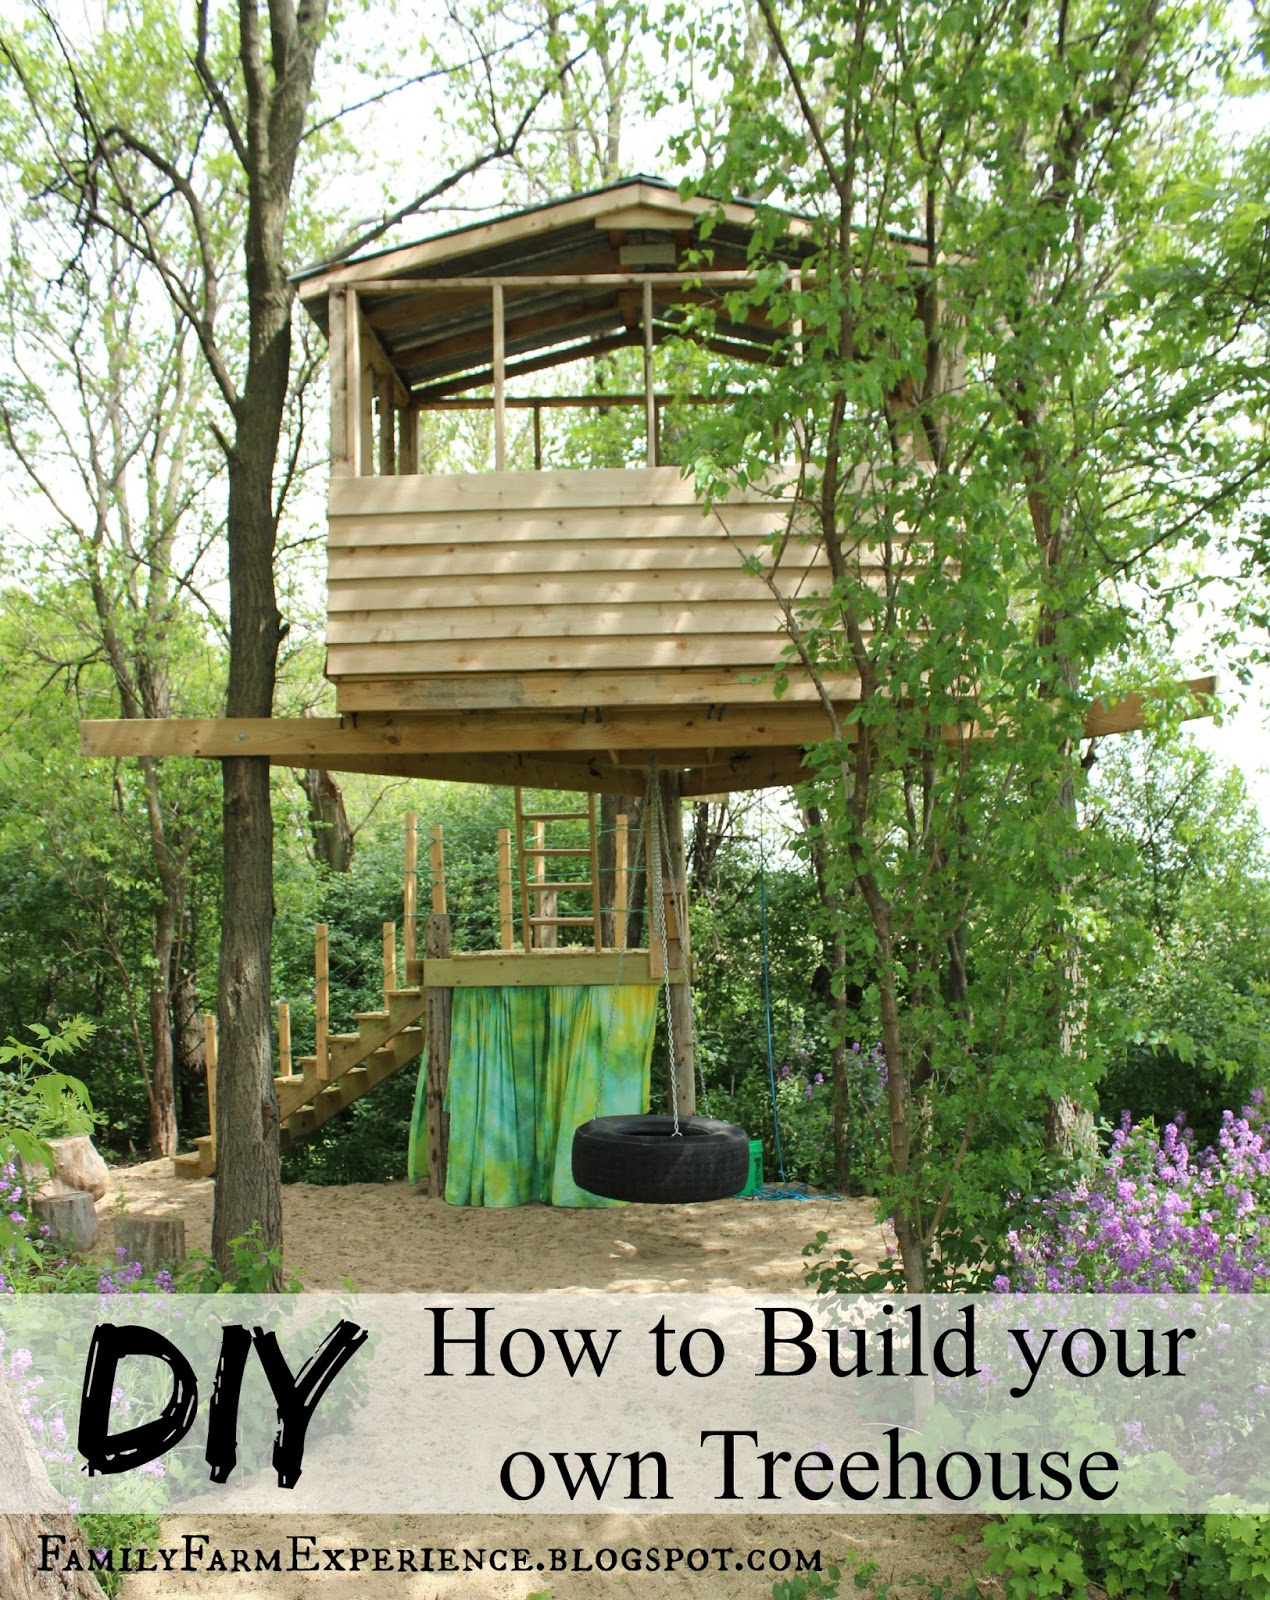 Family farm experience diy how to build your own treehouse Build your own house